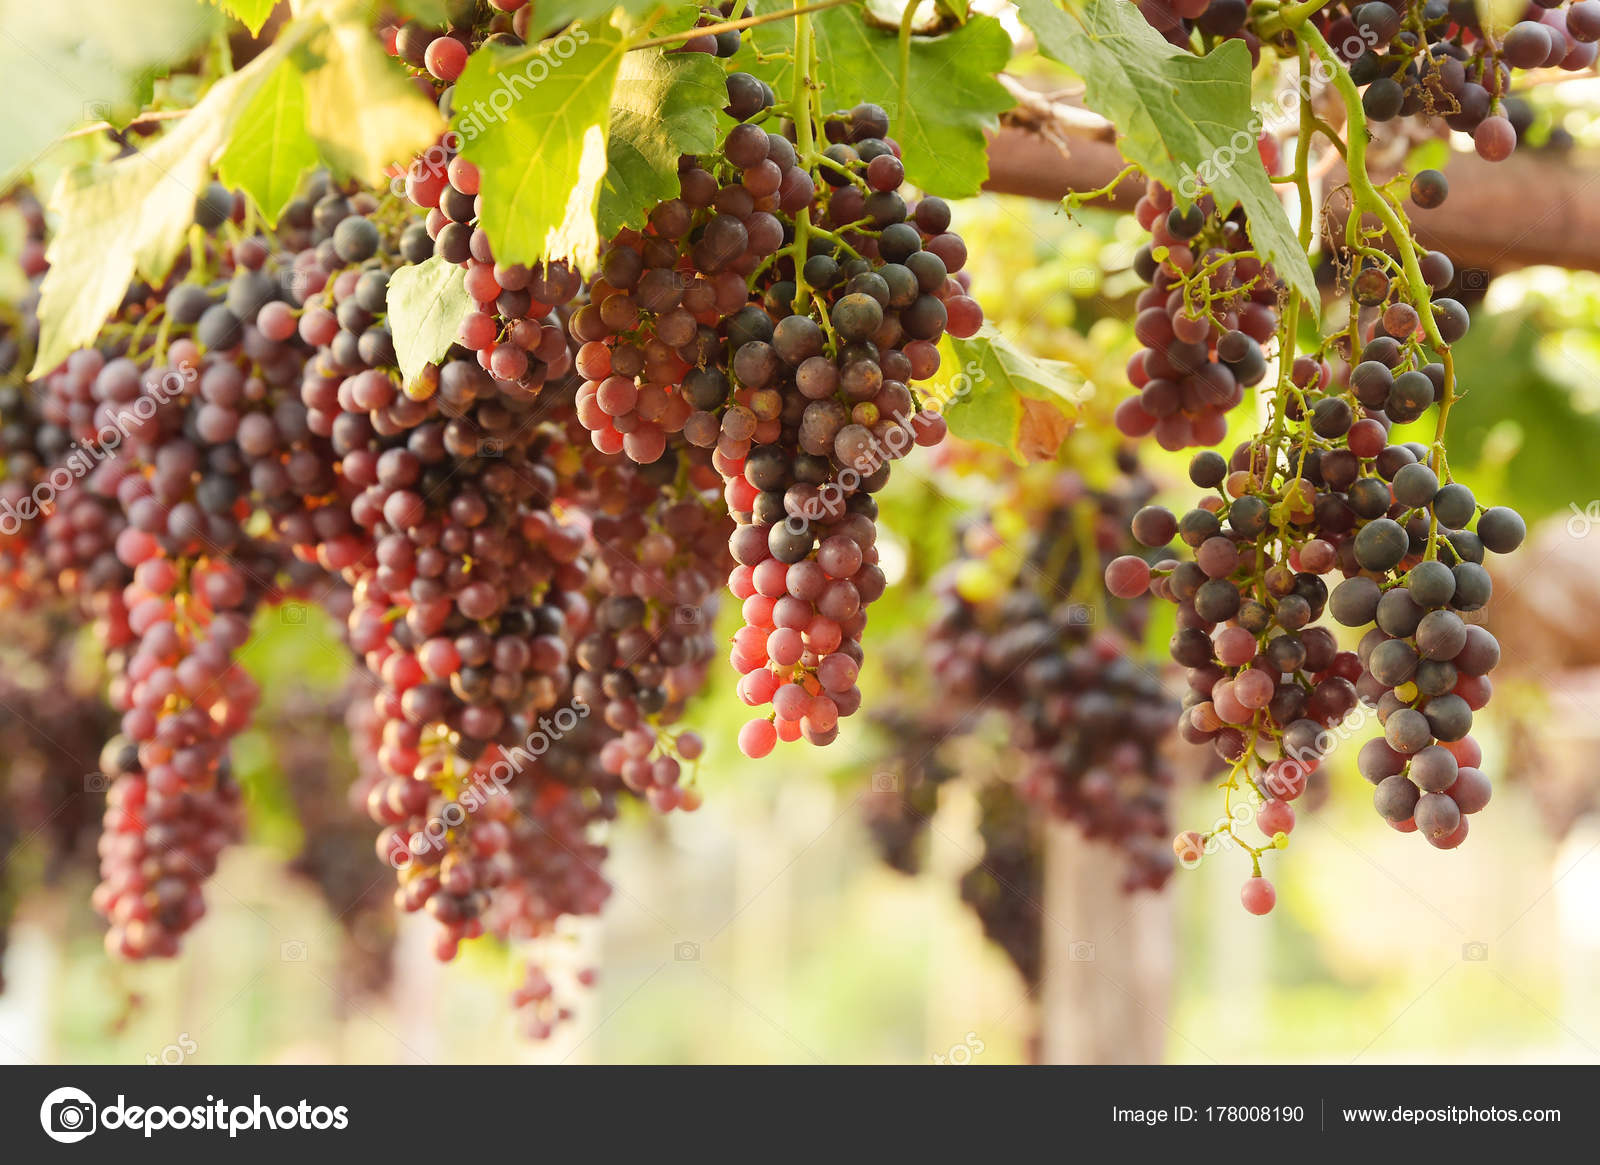 Red Ripe Grapes Garden — Stock Photo © aei_cei@hotmail.com #178008190